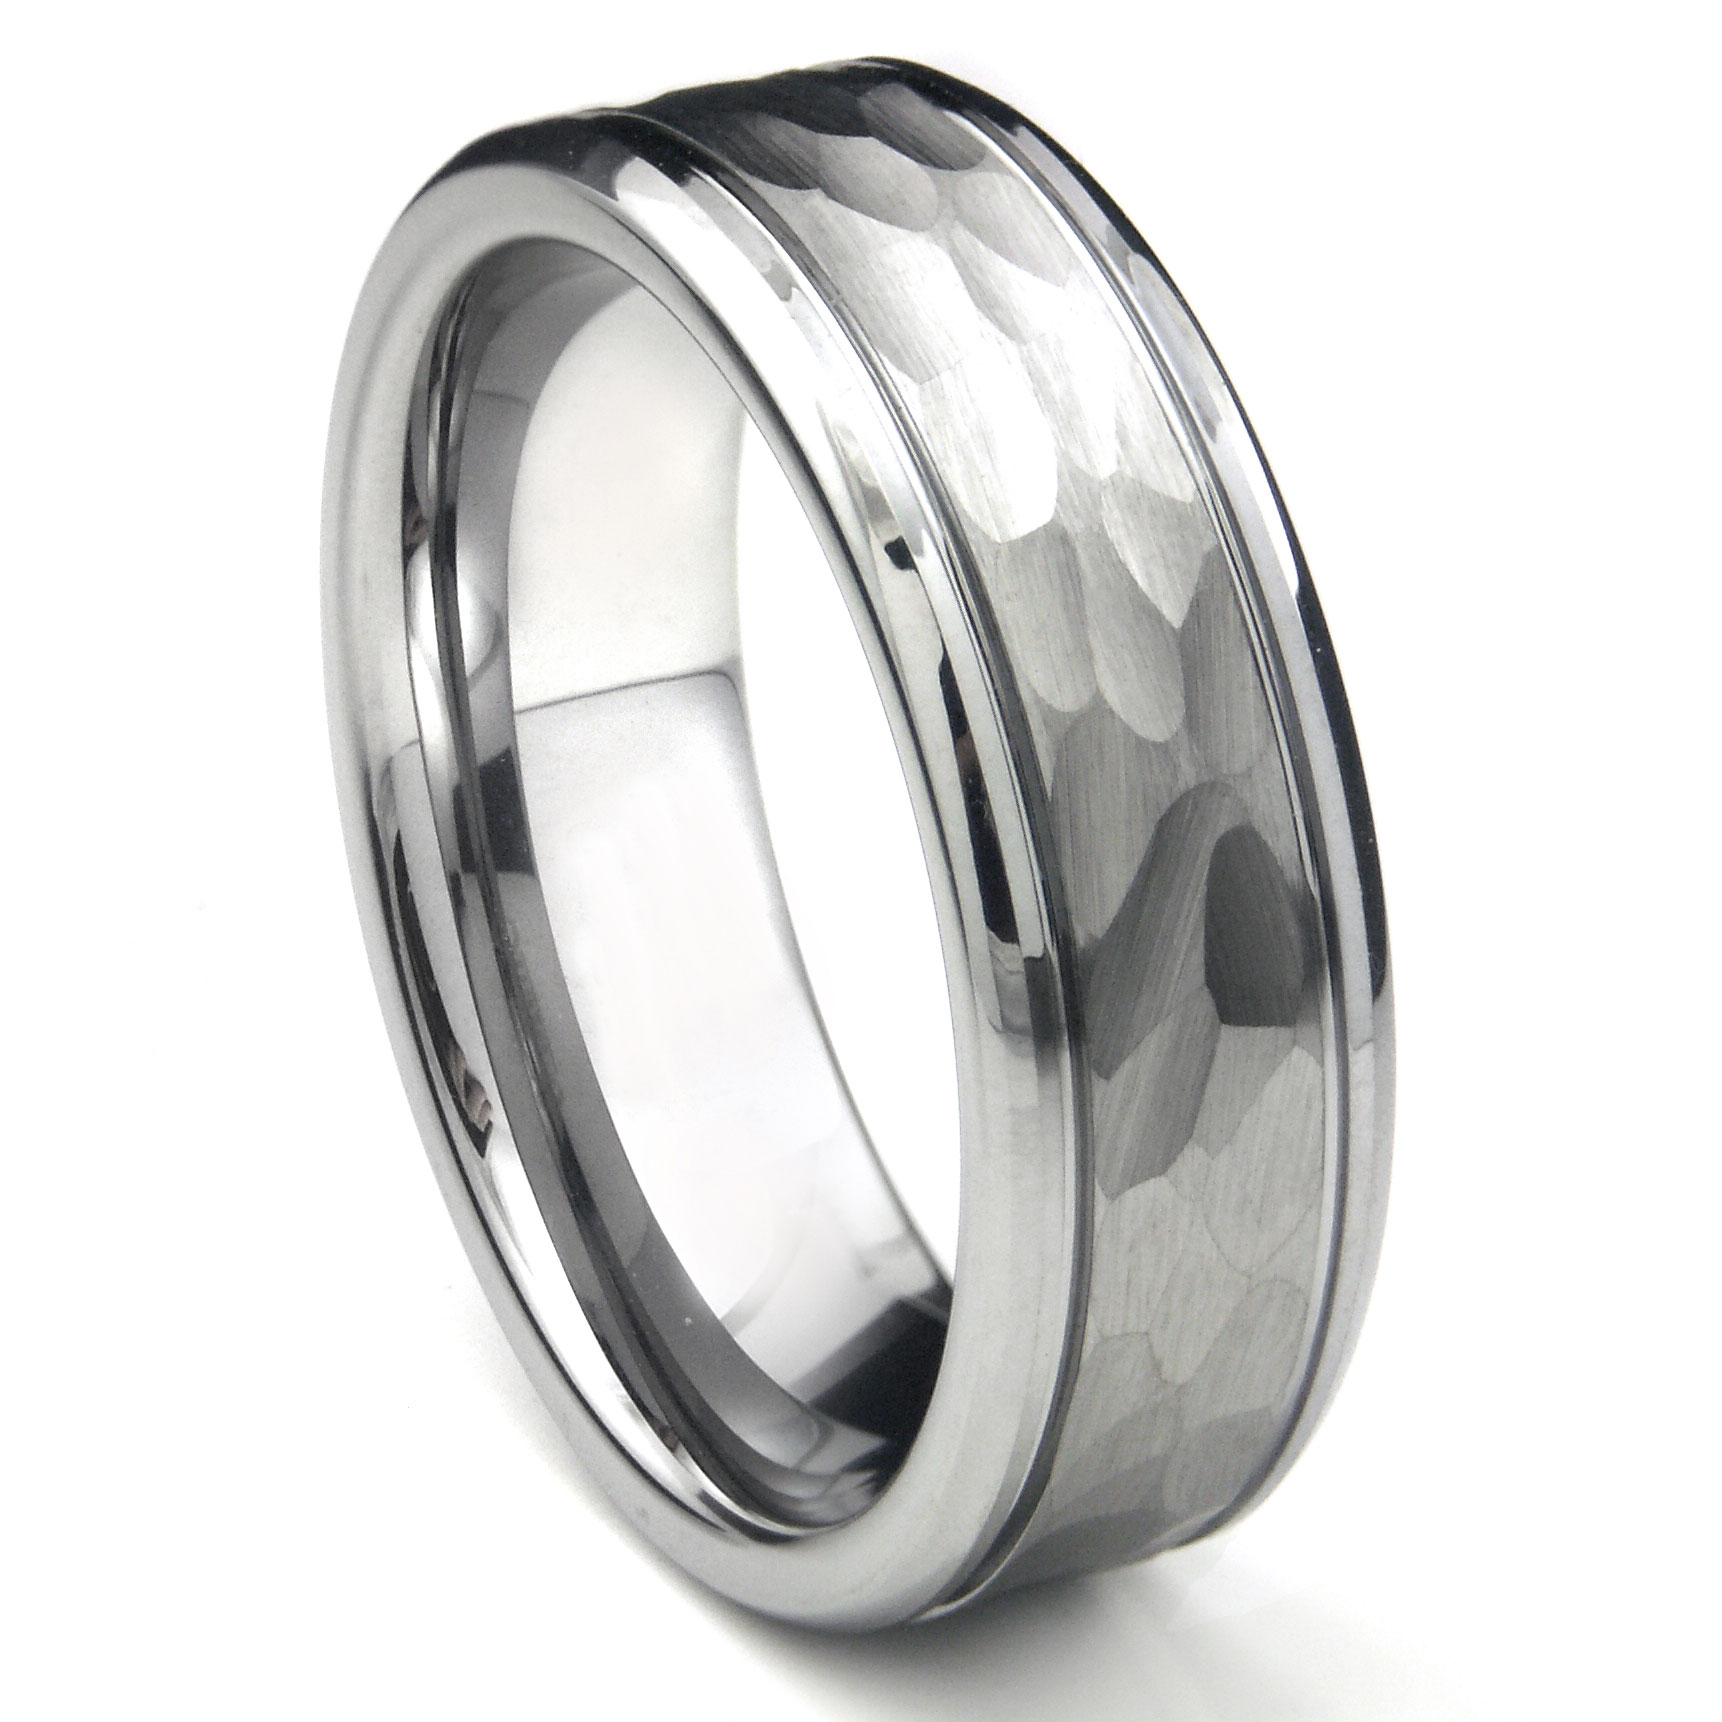 b amazon wedding band titanium jewelry black ca rings unisex mens bands men